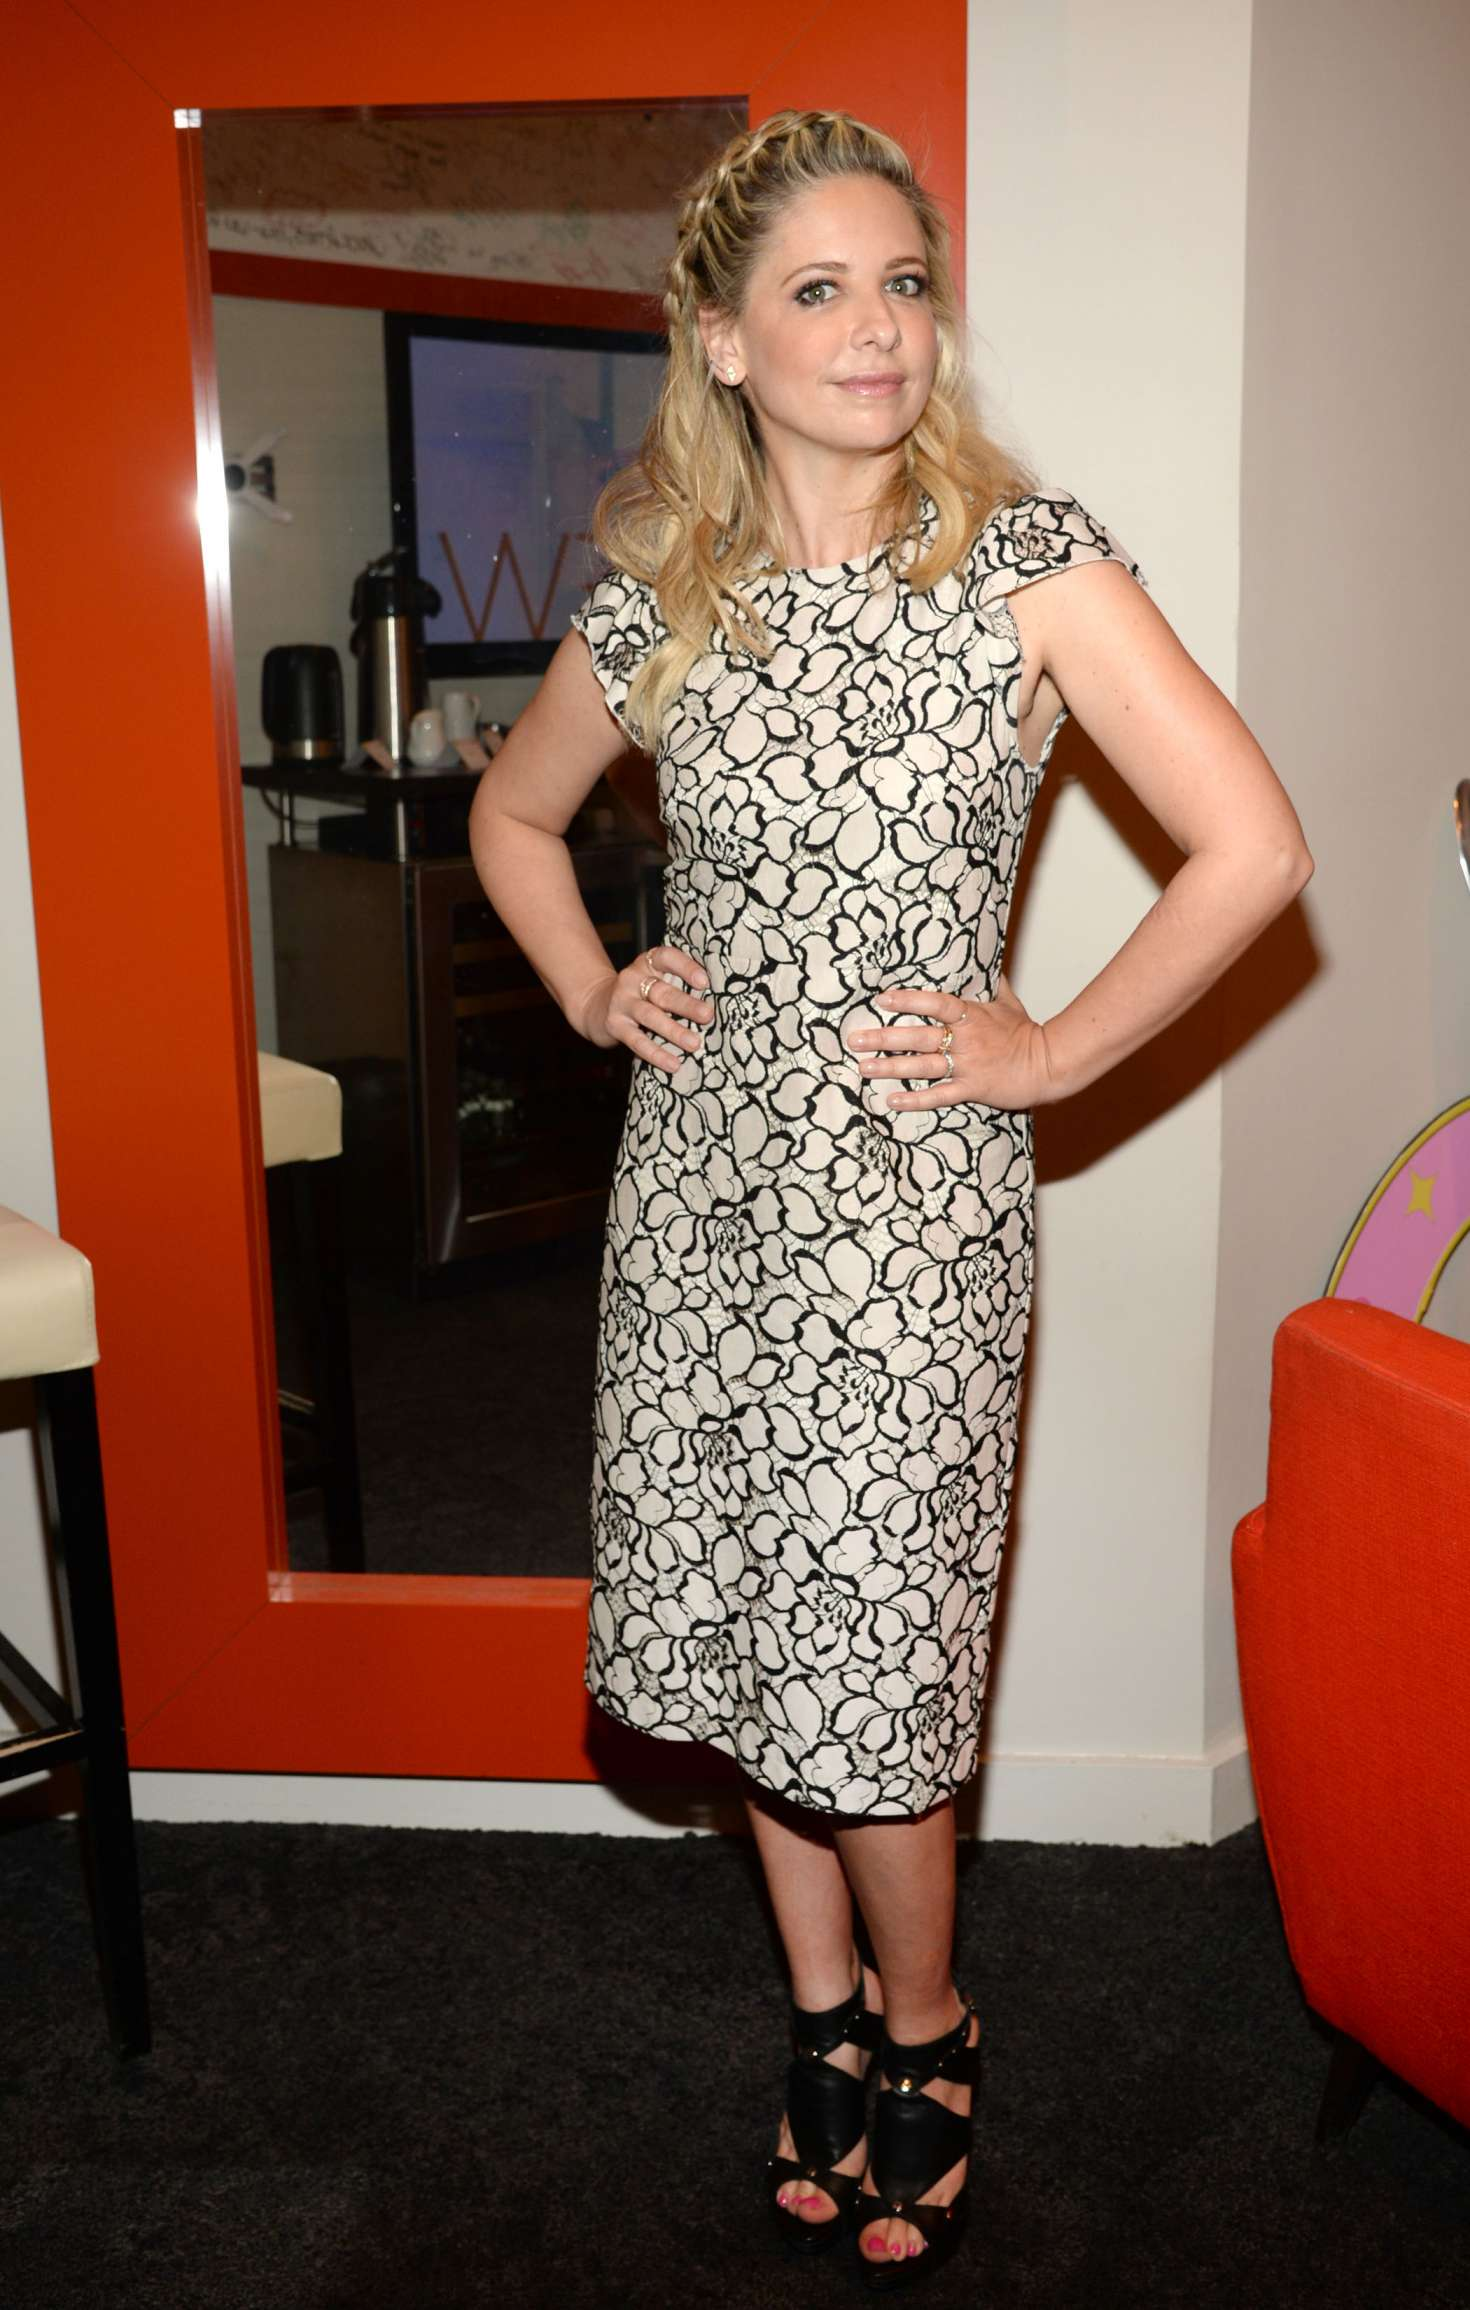 Sarah michelle gellar at the chew tv show in ny